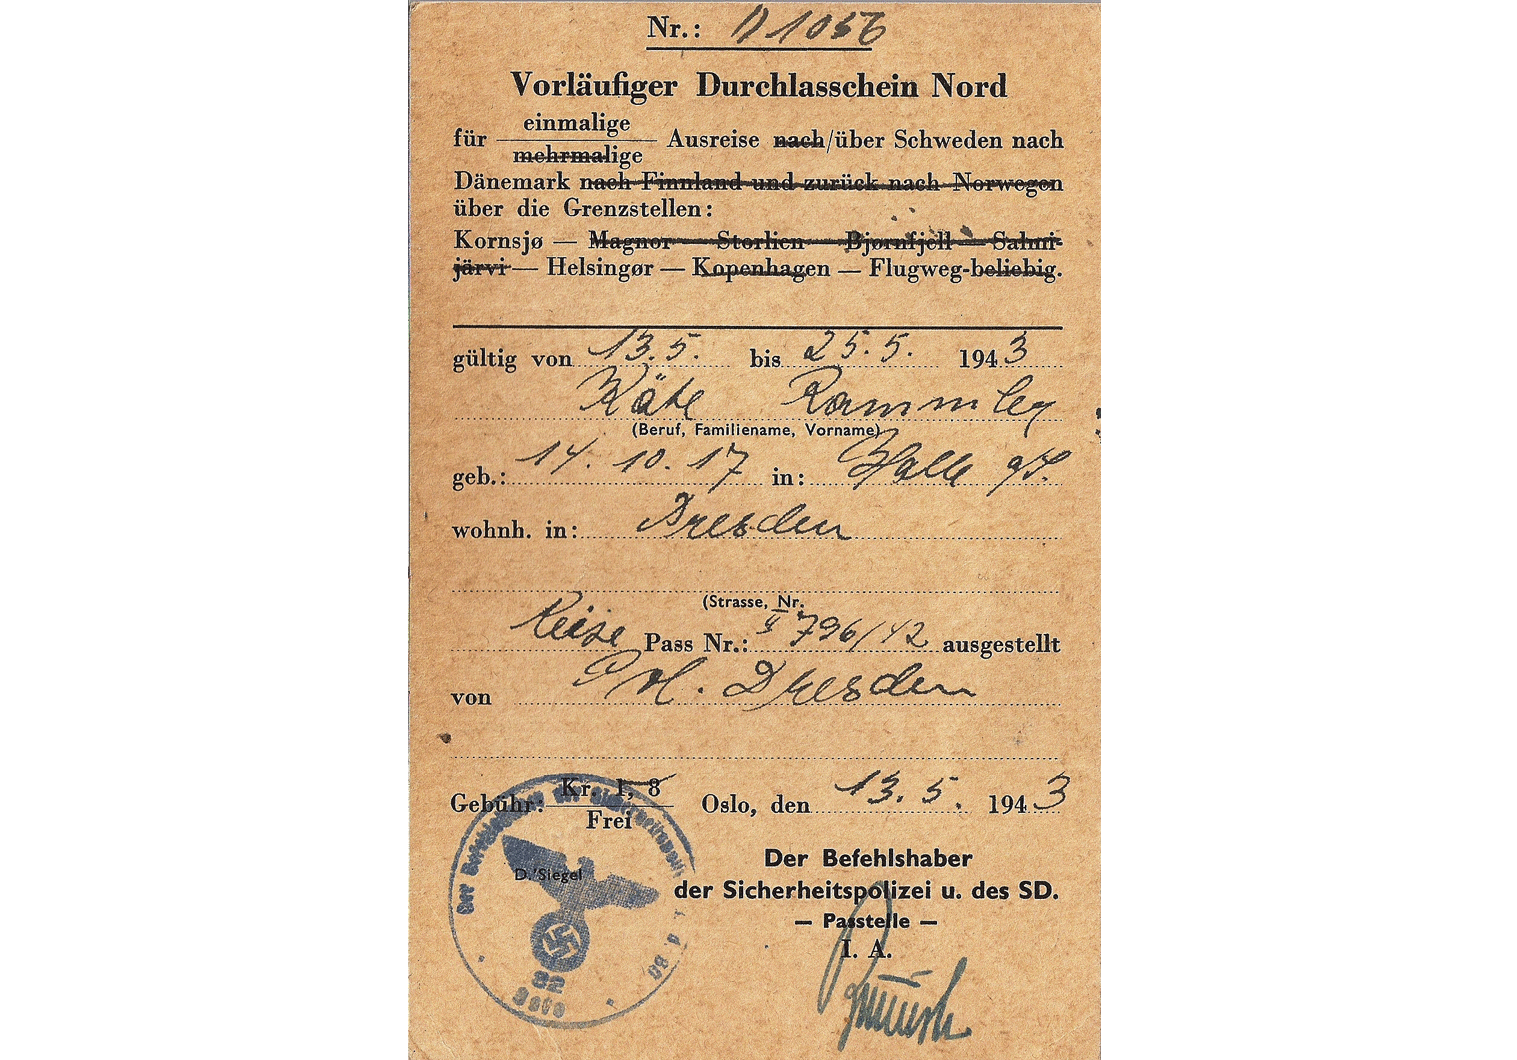 SS & SD travel document